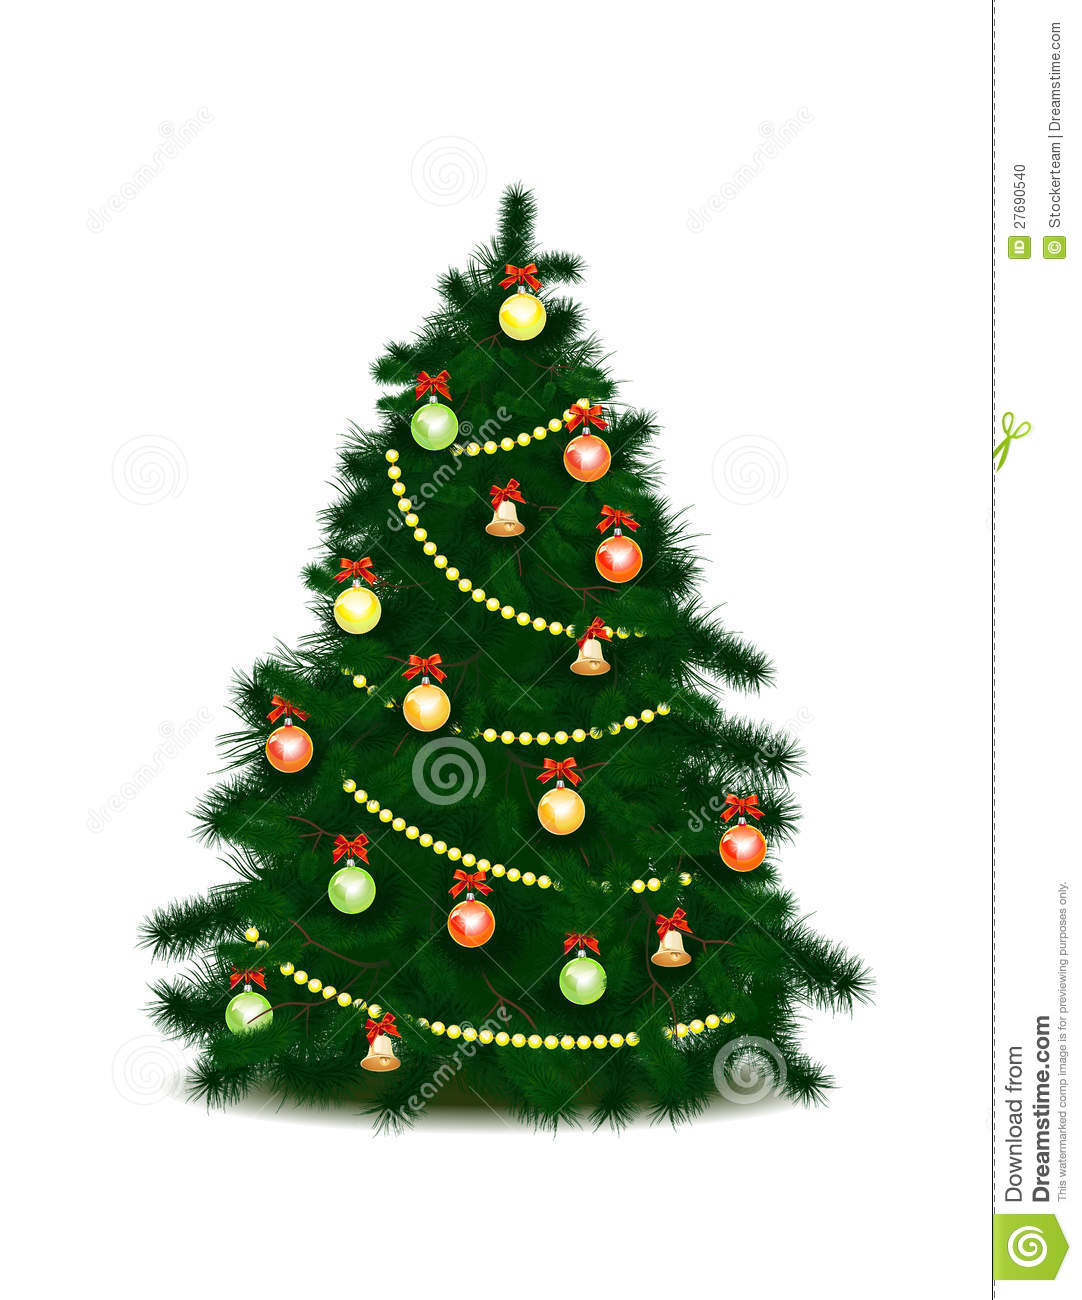 Christmas Tree With Toys : Christmas tree with toys and a garland stock illustration